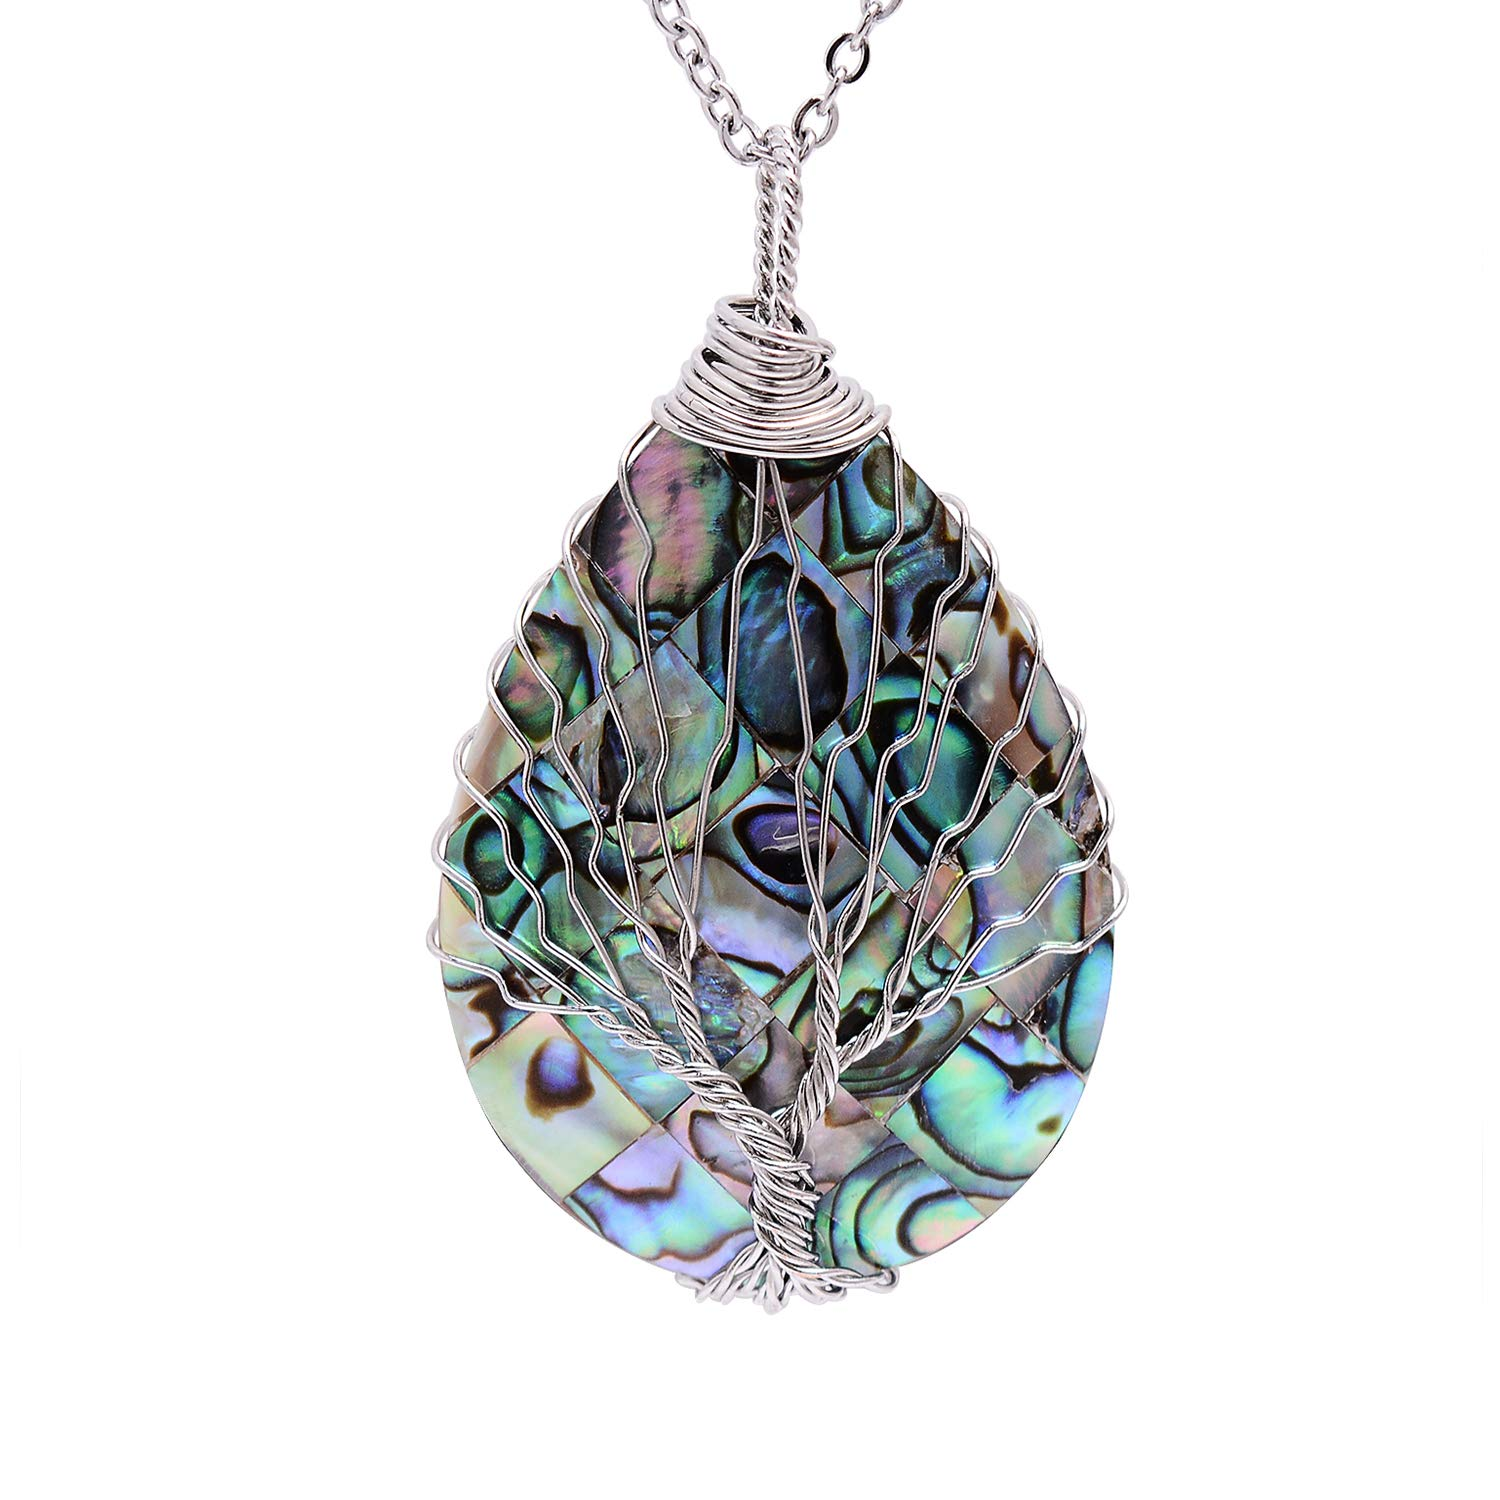 Wire Wrapped Abalone Teardrop Necklace – Handmade Silver Abalone Shell Water Drop Tree of Life Pendent Jewelry for Women